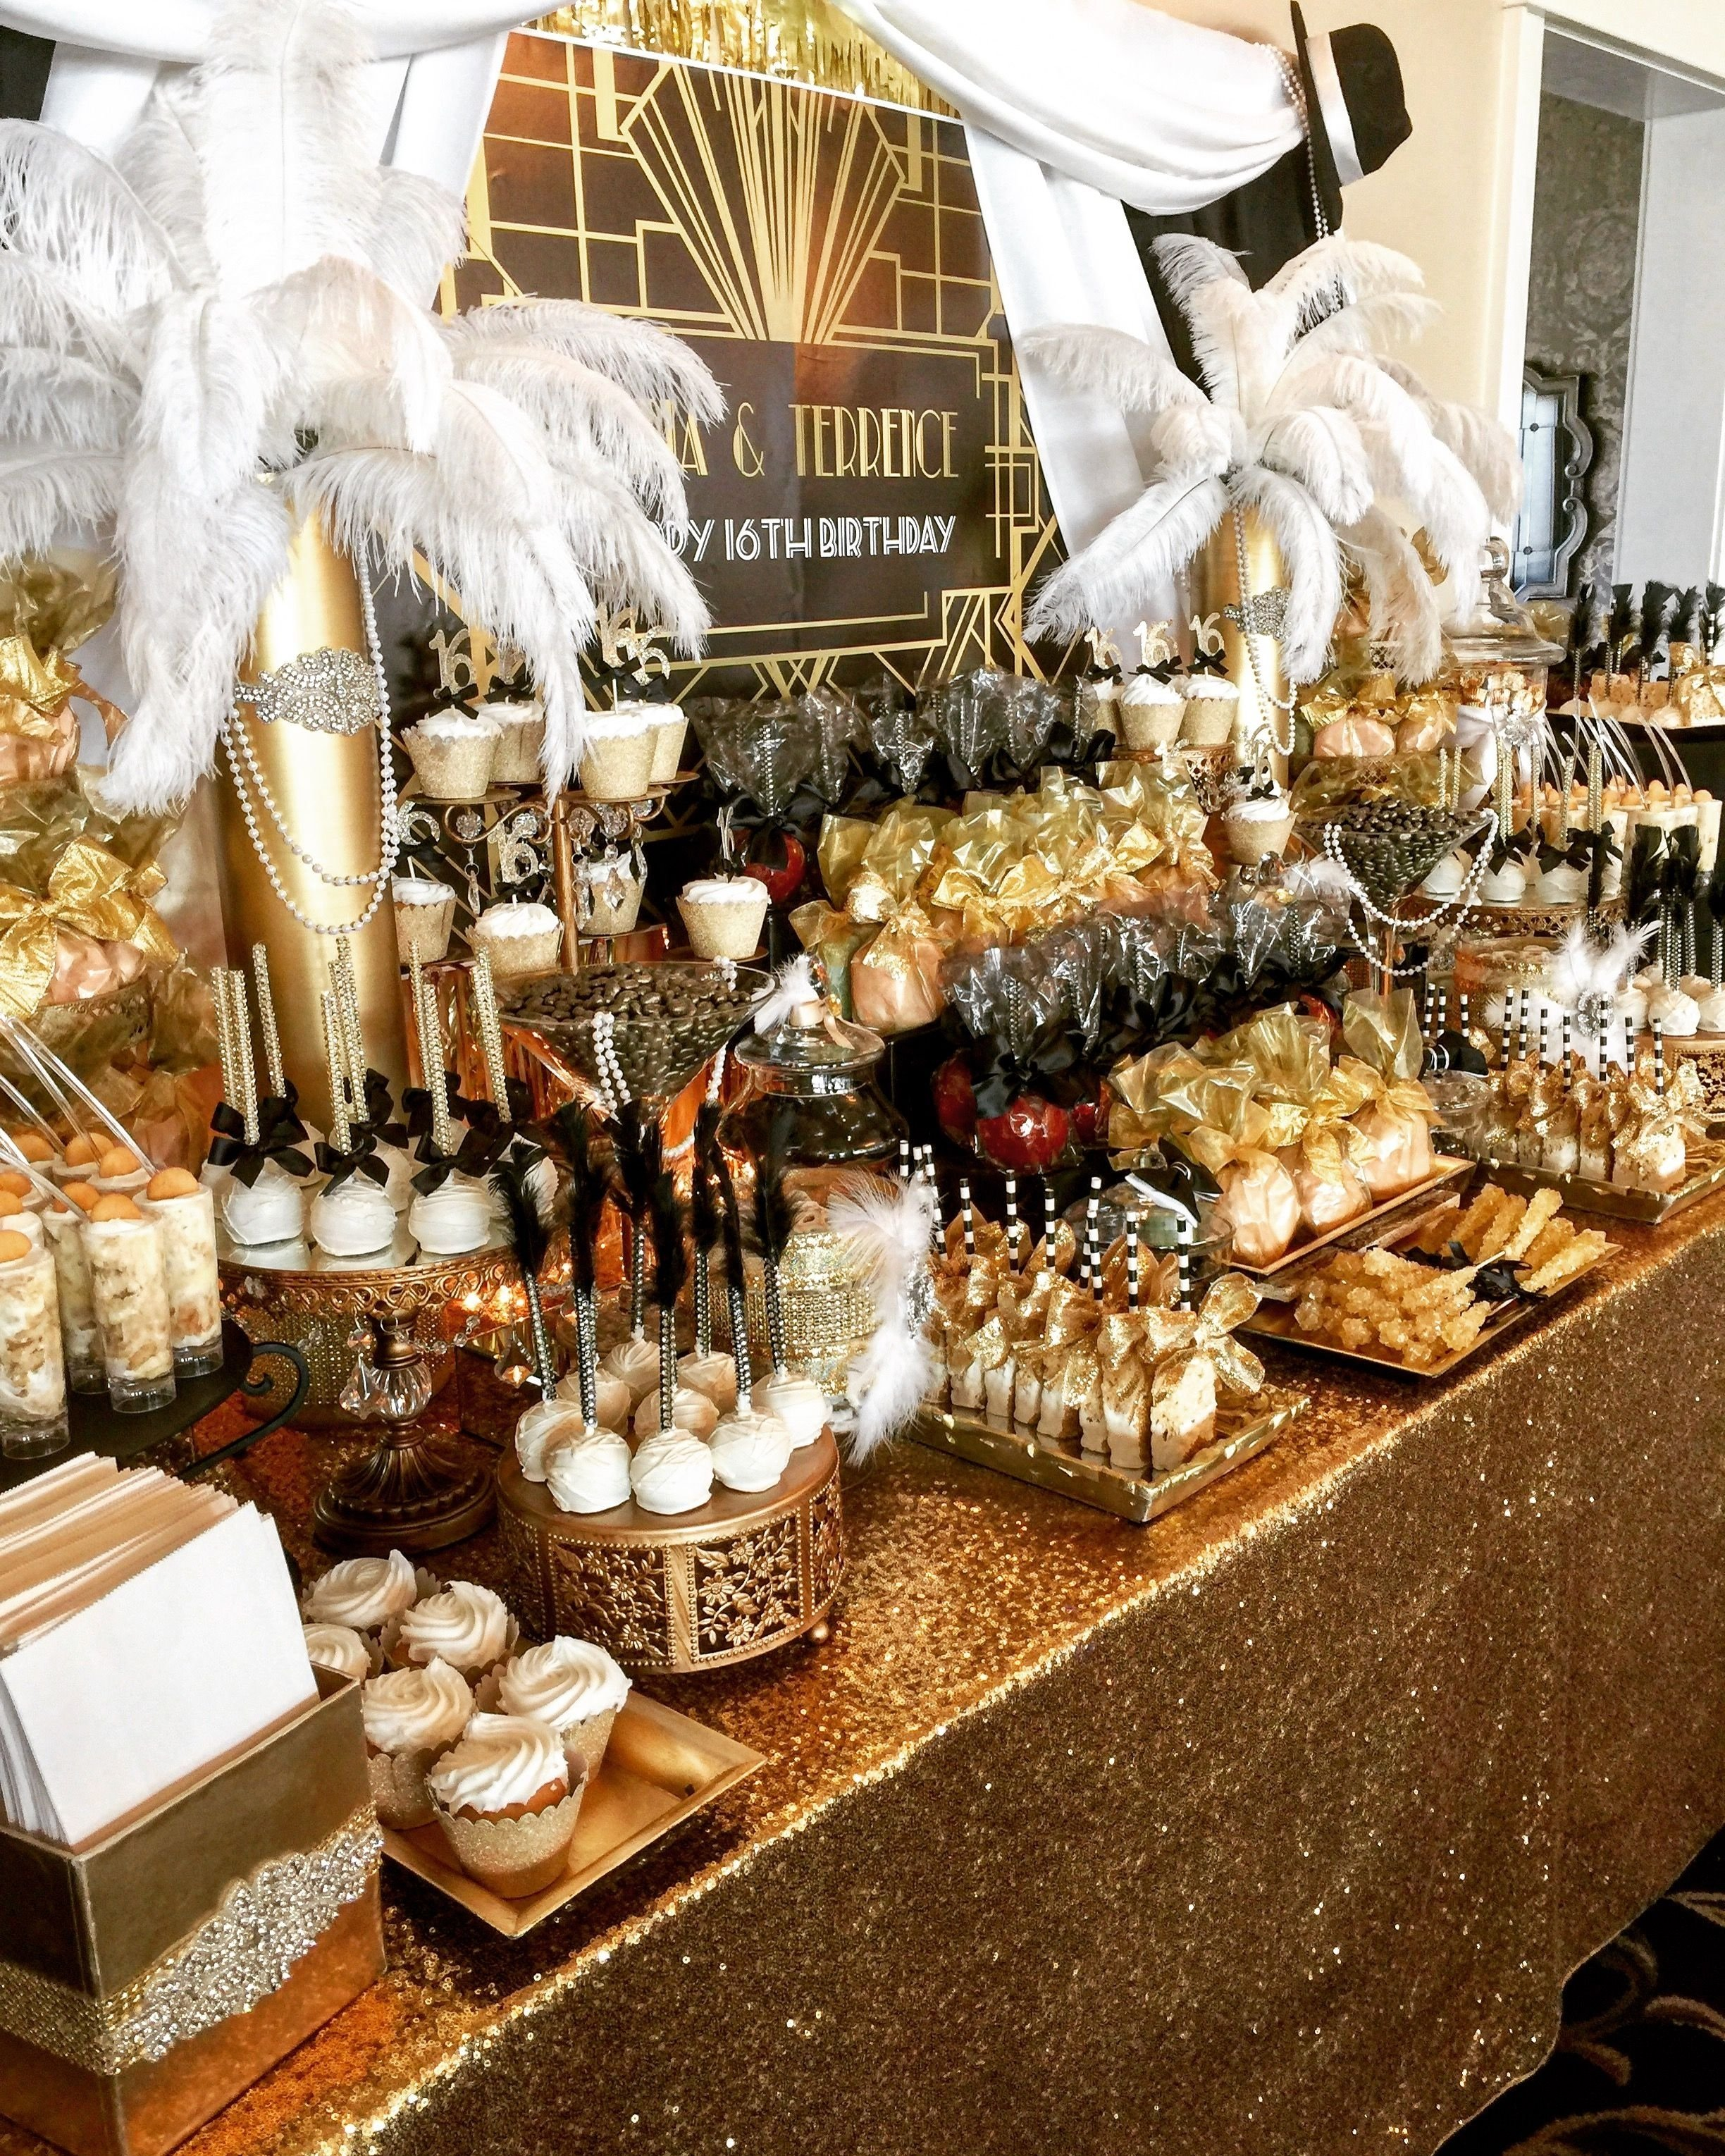 10 Fashionable The Great Gatsby Party Ideas great gatsby candy buffet themed wedding ideas pinterest 1 2020